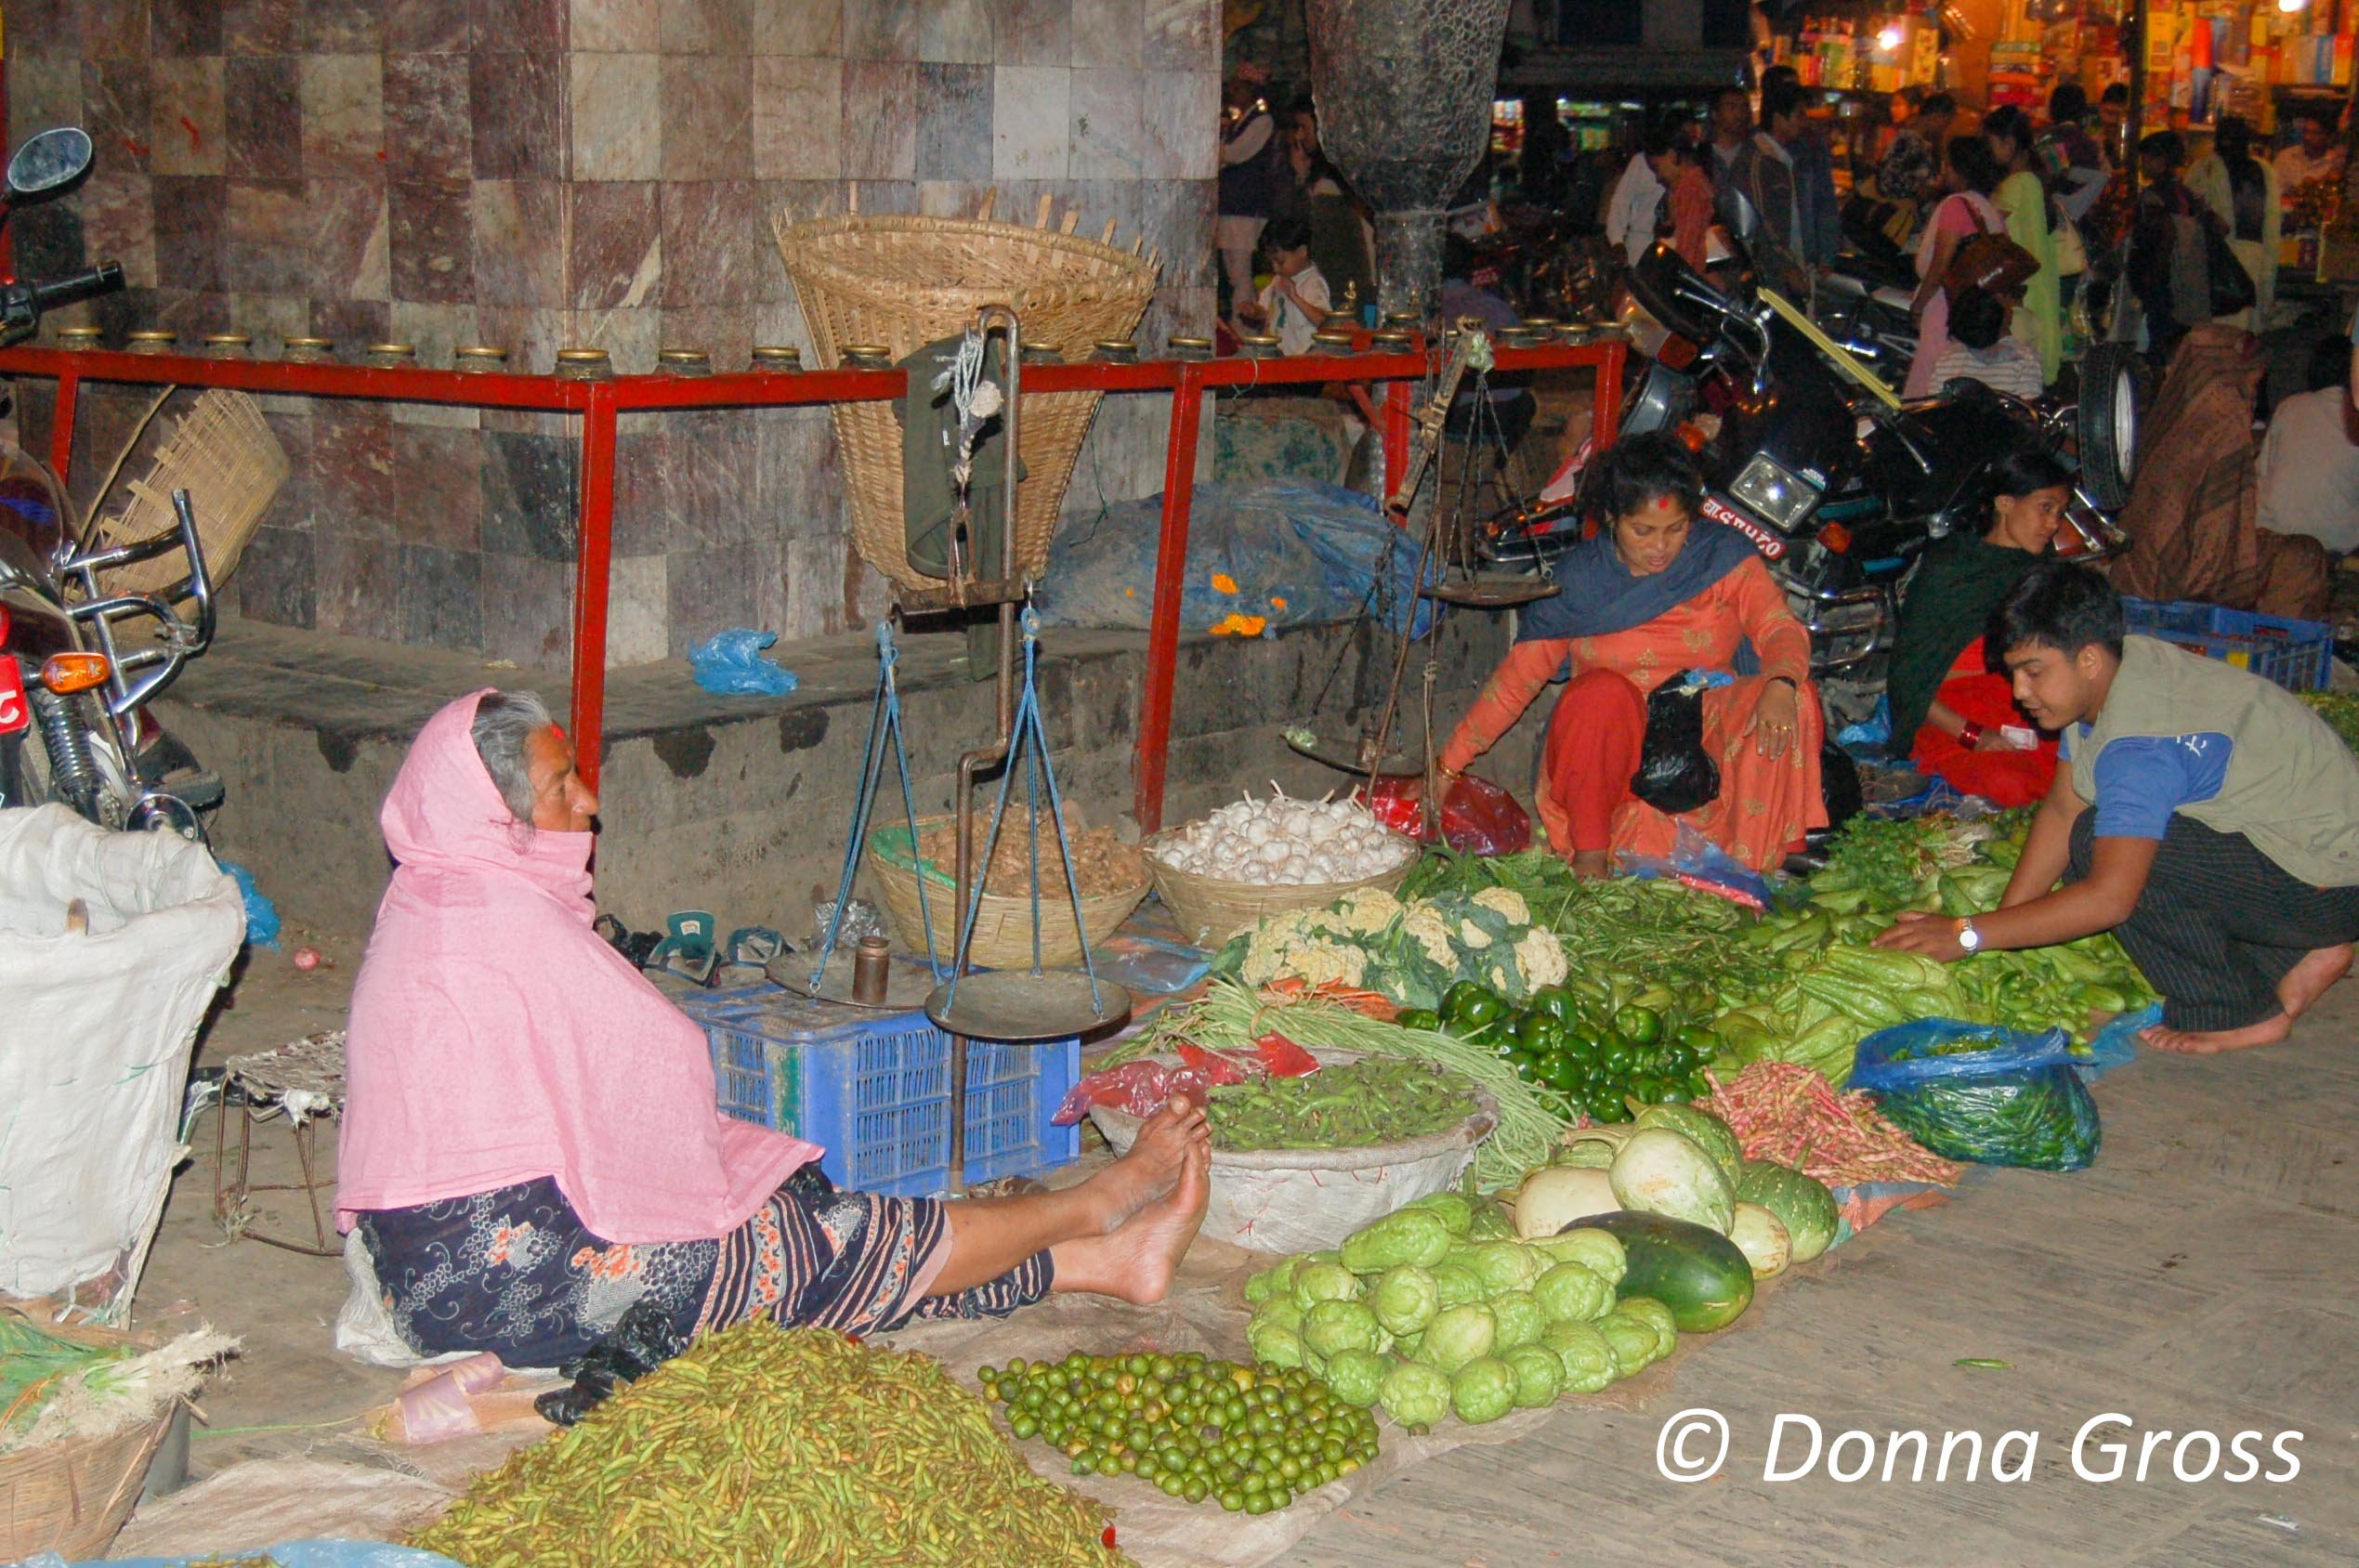 Vegetables for sale, Old Tibet Road, Kathmandu